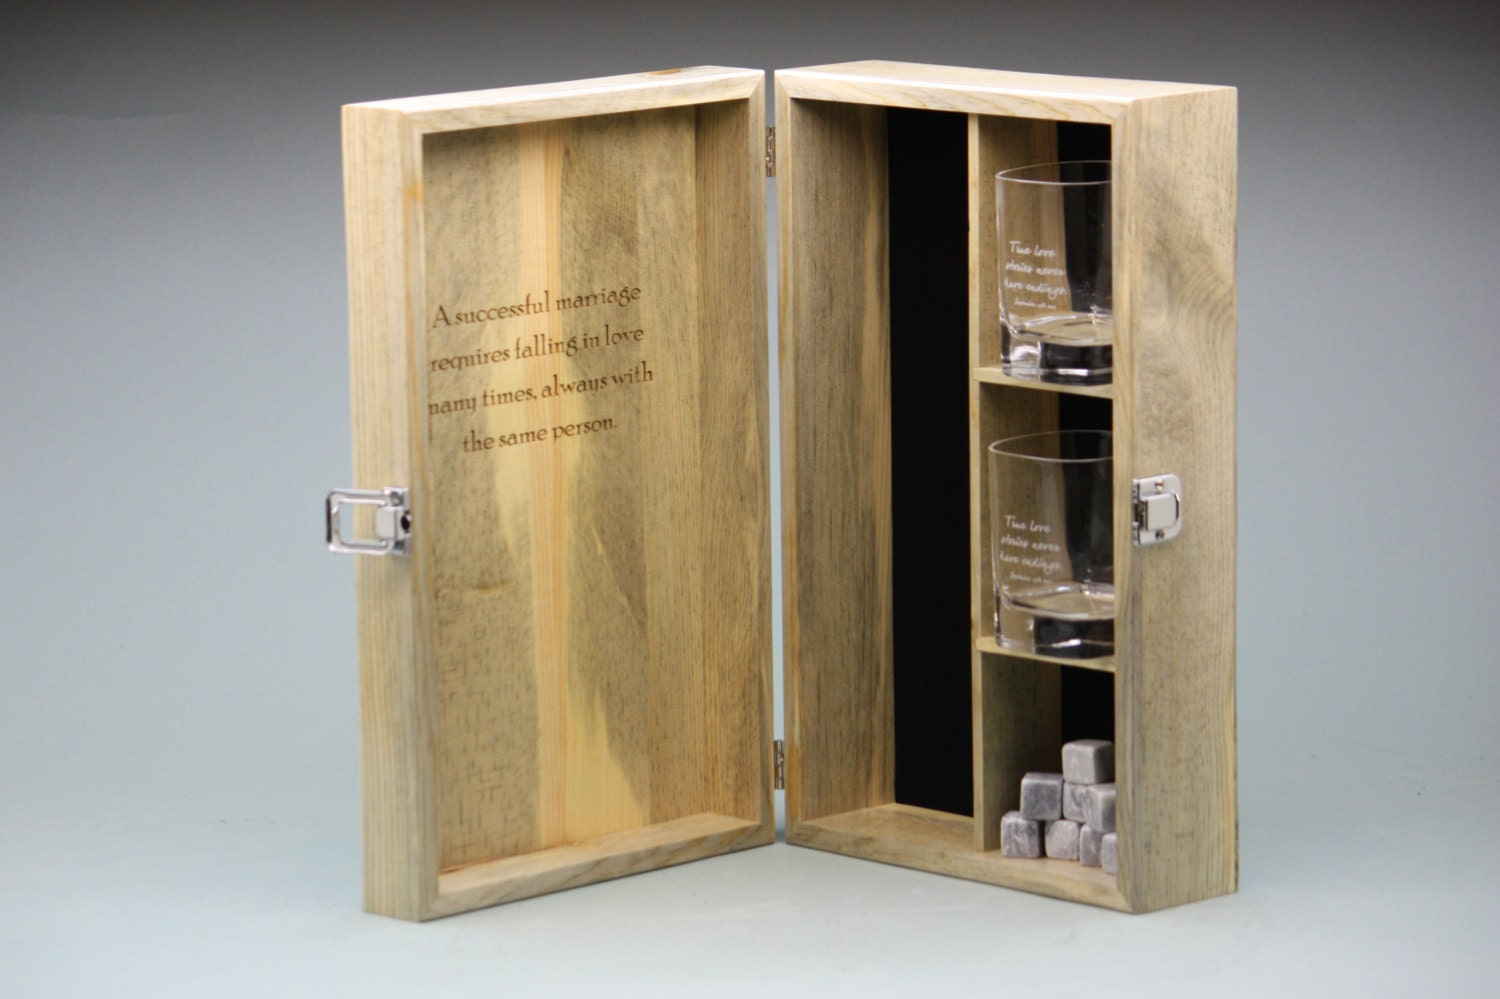 custom engraved whiskey box set w 2 engraved glasses and. Black Bedroom Furniture Sets. Home Design Ideas